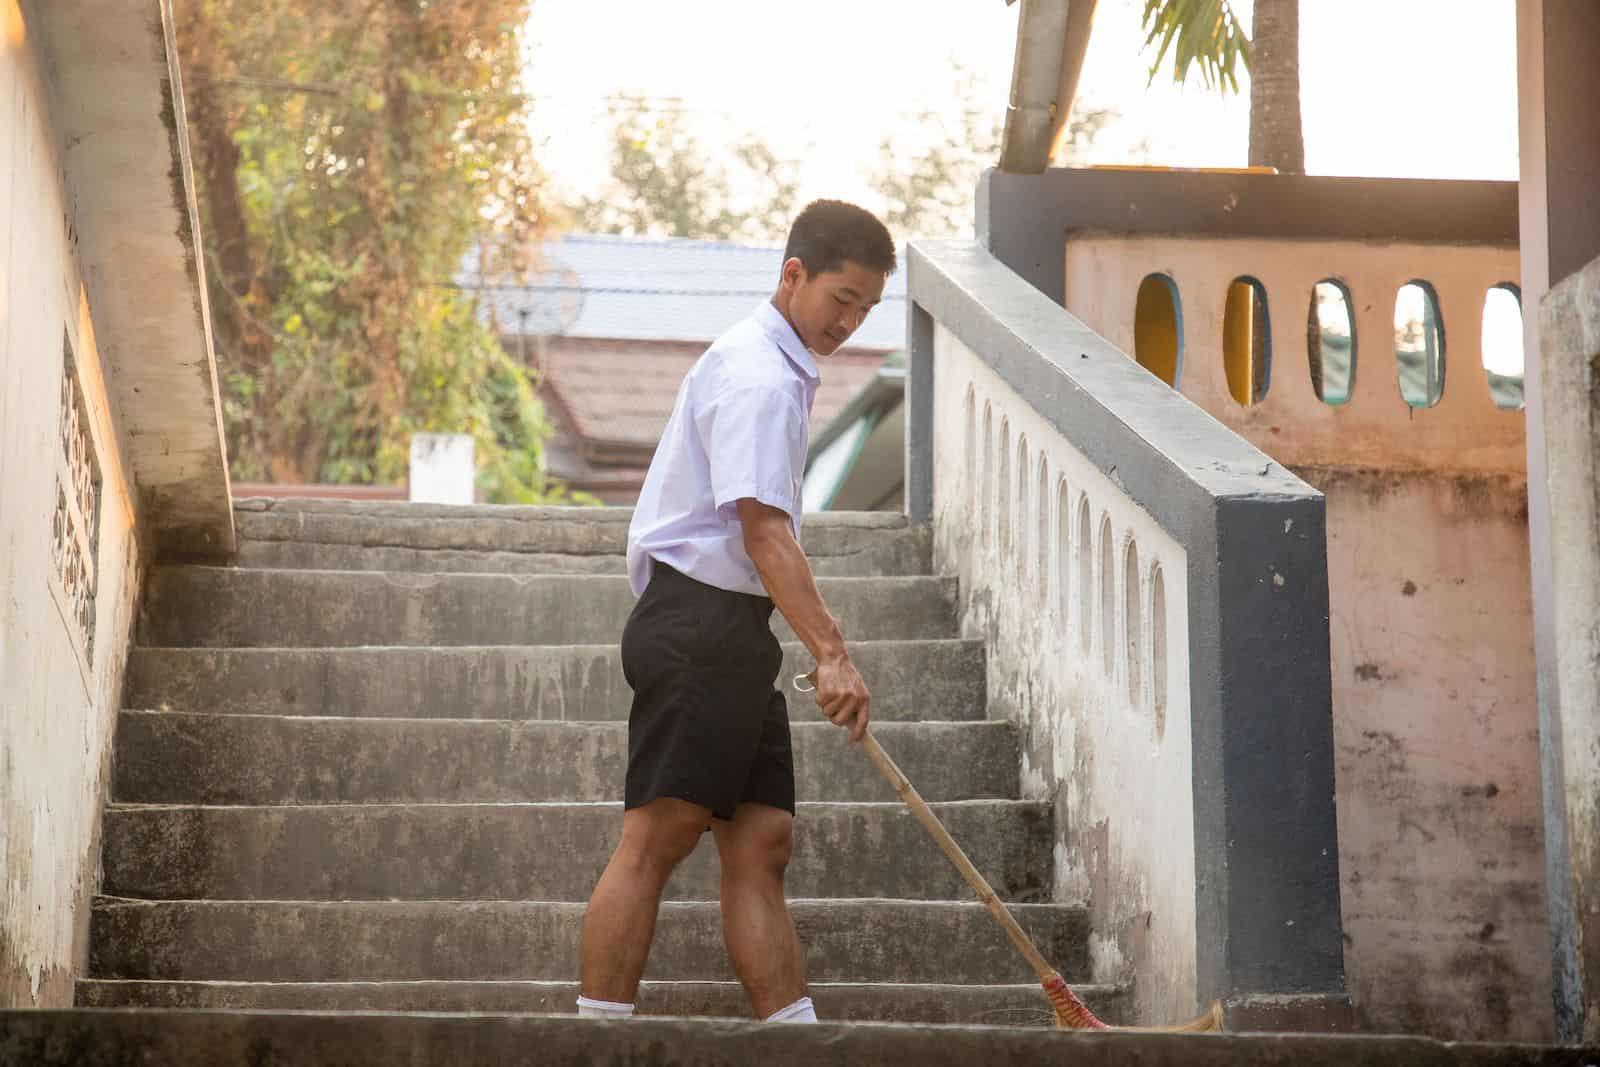 A boy sweeps the stairs outside at a concrete building with trees in the background.